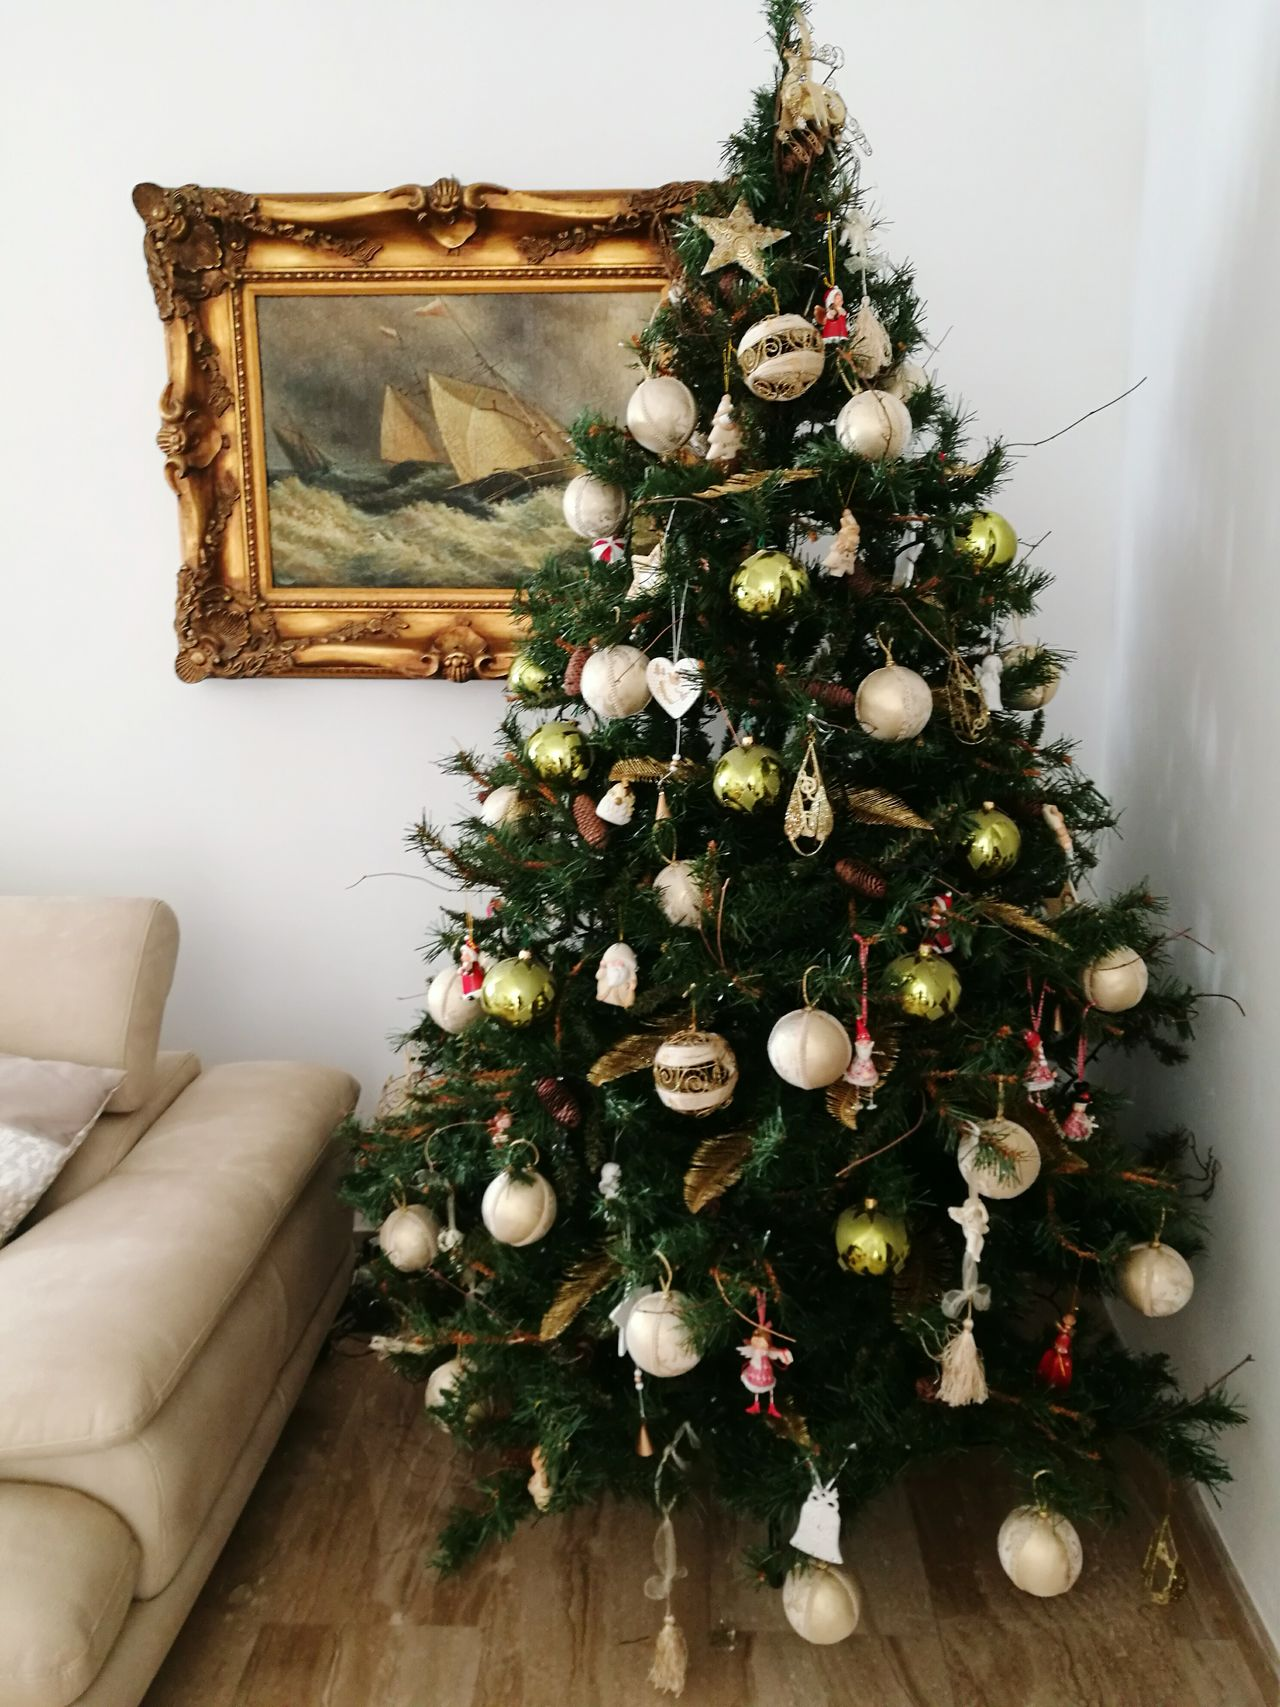 Oh Christmas tree Christmas Christmas Tree Tree Living Room Celebration Decoration Christmas Decoration Indoors  Pinaceae Christmas Ornament Christmas Present Plant Holiday - Event Coniferous Tree No People Home Interior Fir Tree Domestic Life Close-upNatale 2016 Tradition Fir Tree Natale  Holiday Season Day